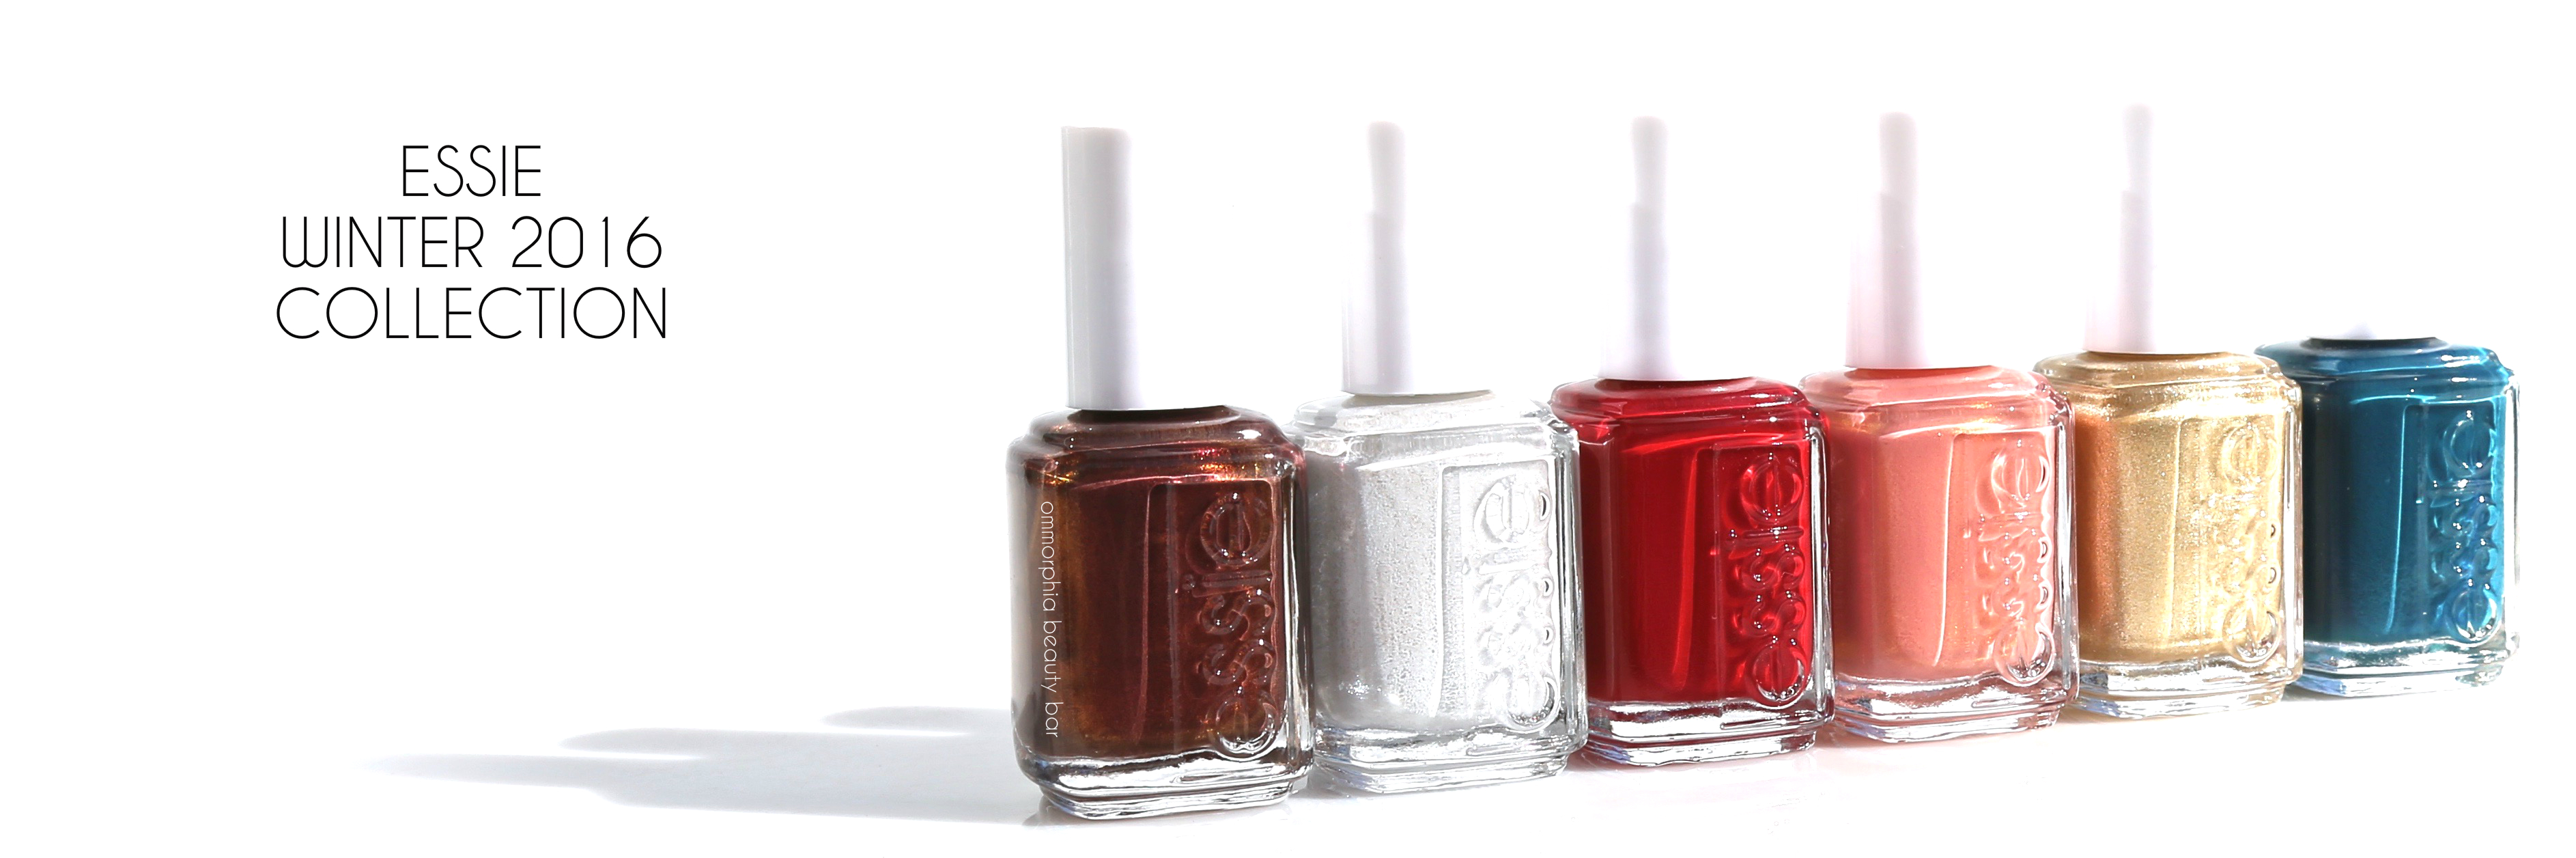 Essie · Winter 2016 Collection   ommorphia beauty bar